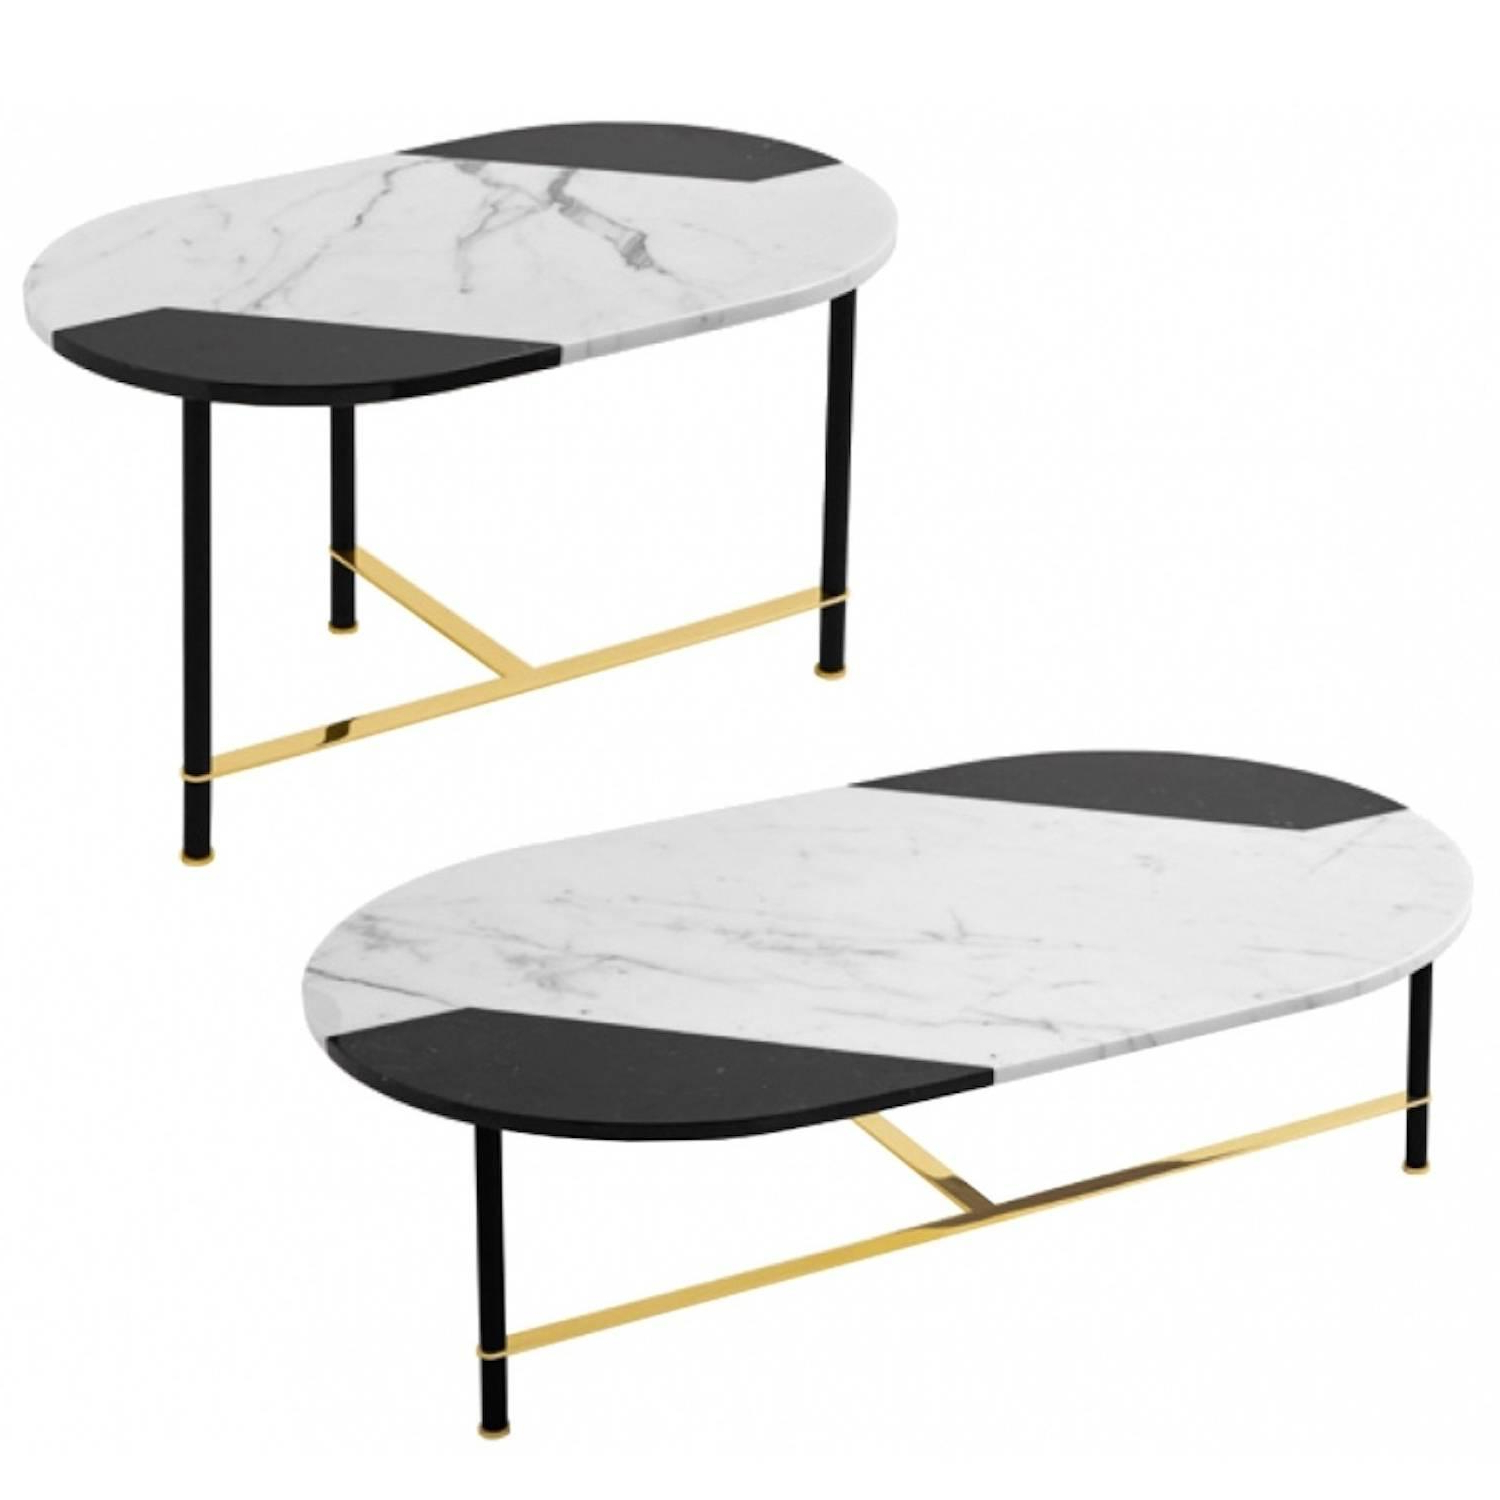 Smart Round Marble Brass Coffee Tables With Regard To 2019 Coffee Table Or Side Table In Black And White Inlaid Marble Top With (View 15 of 20)